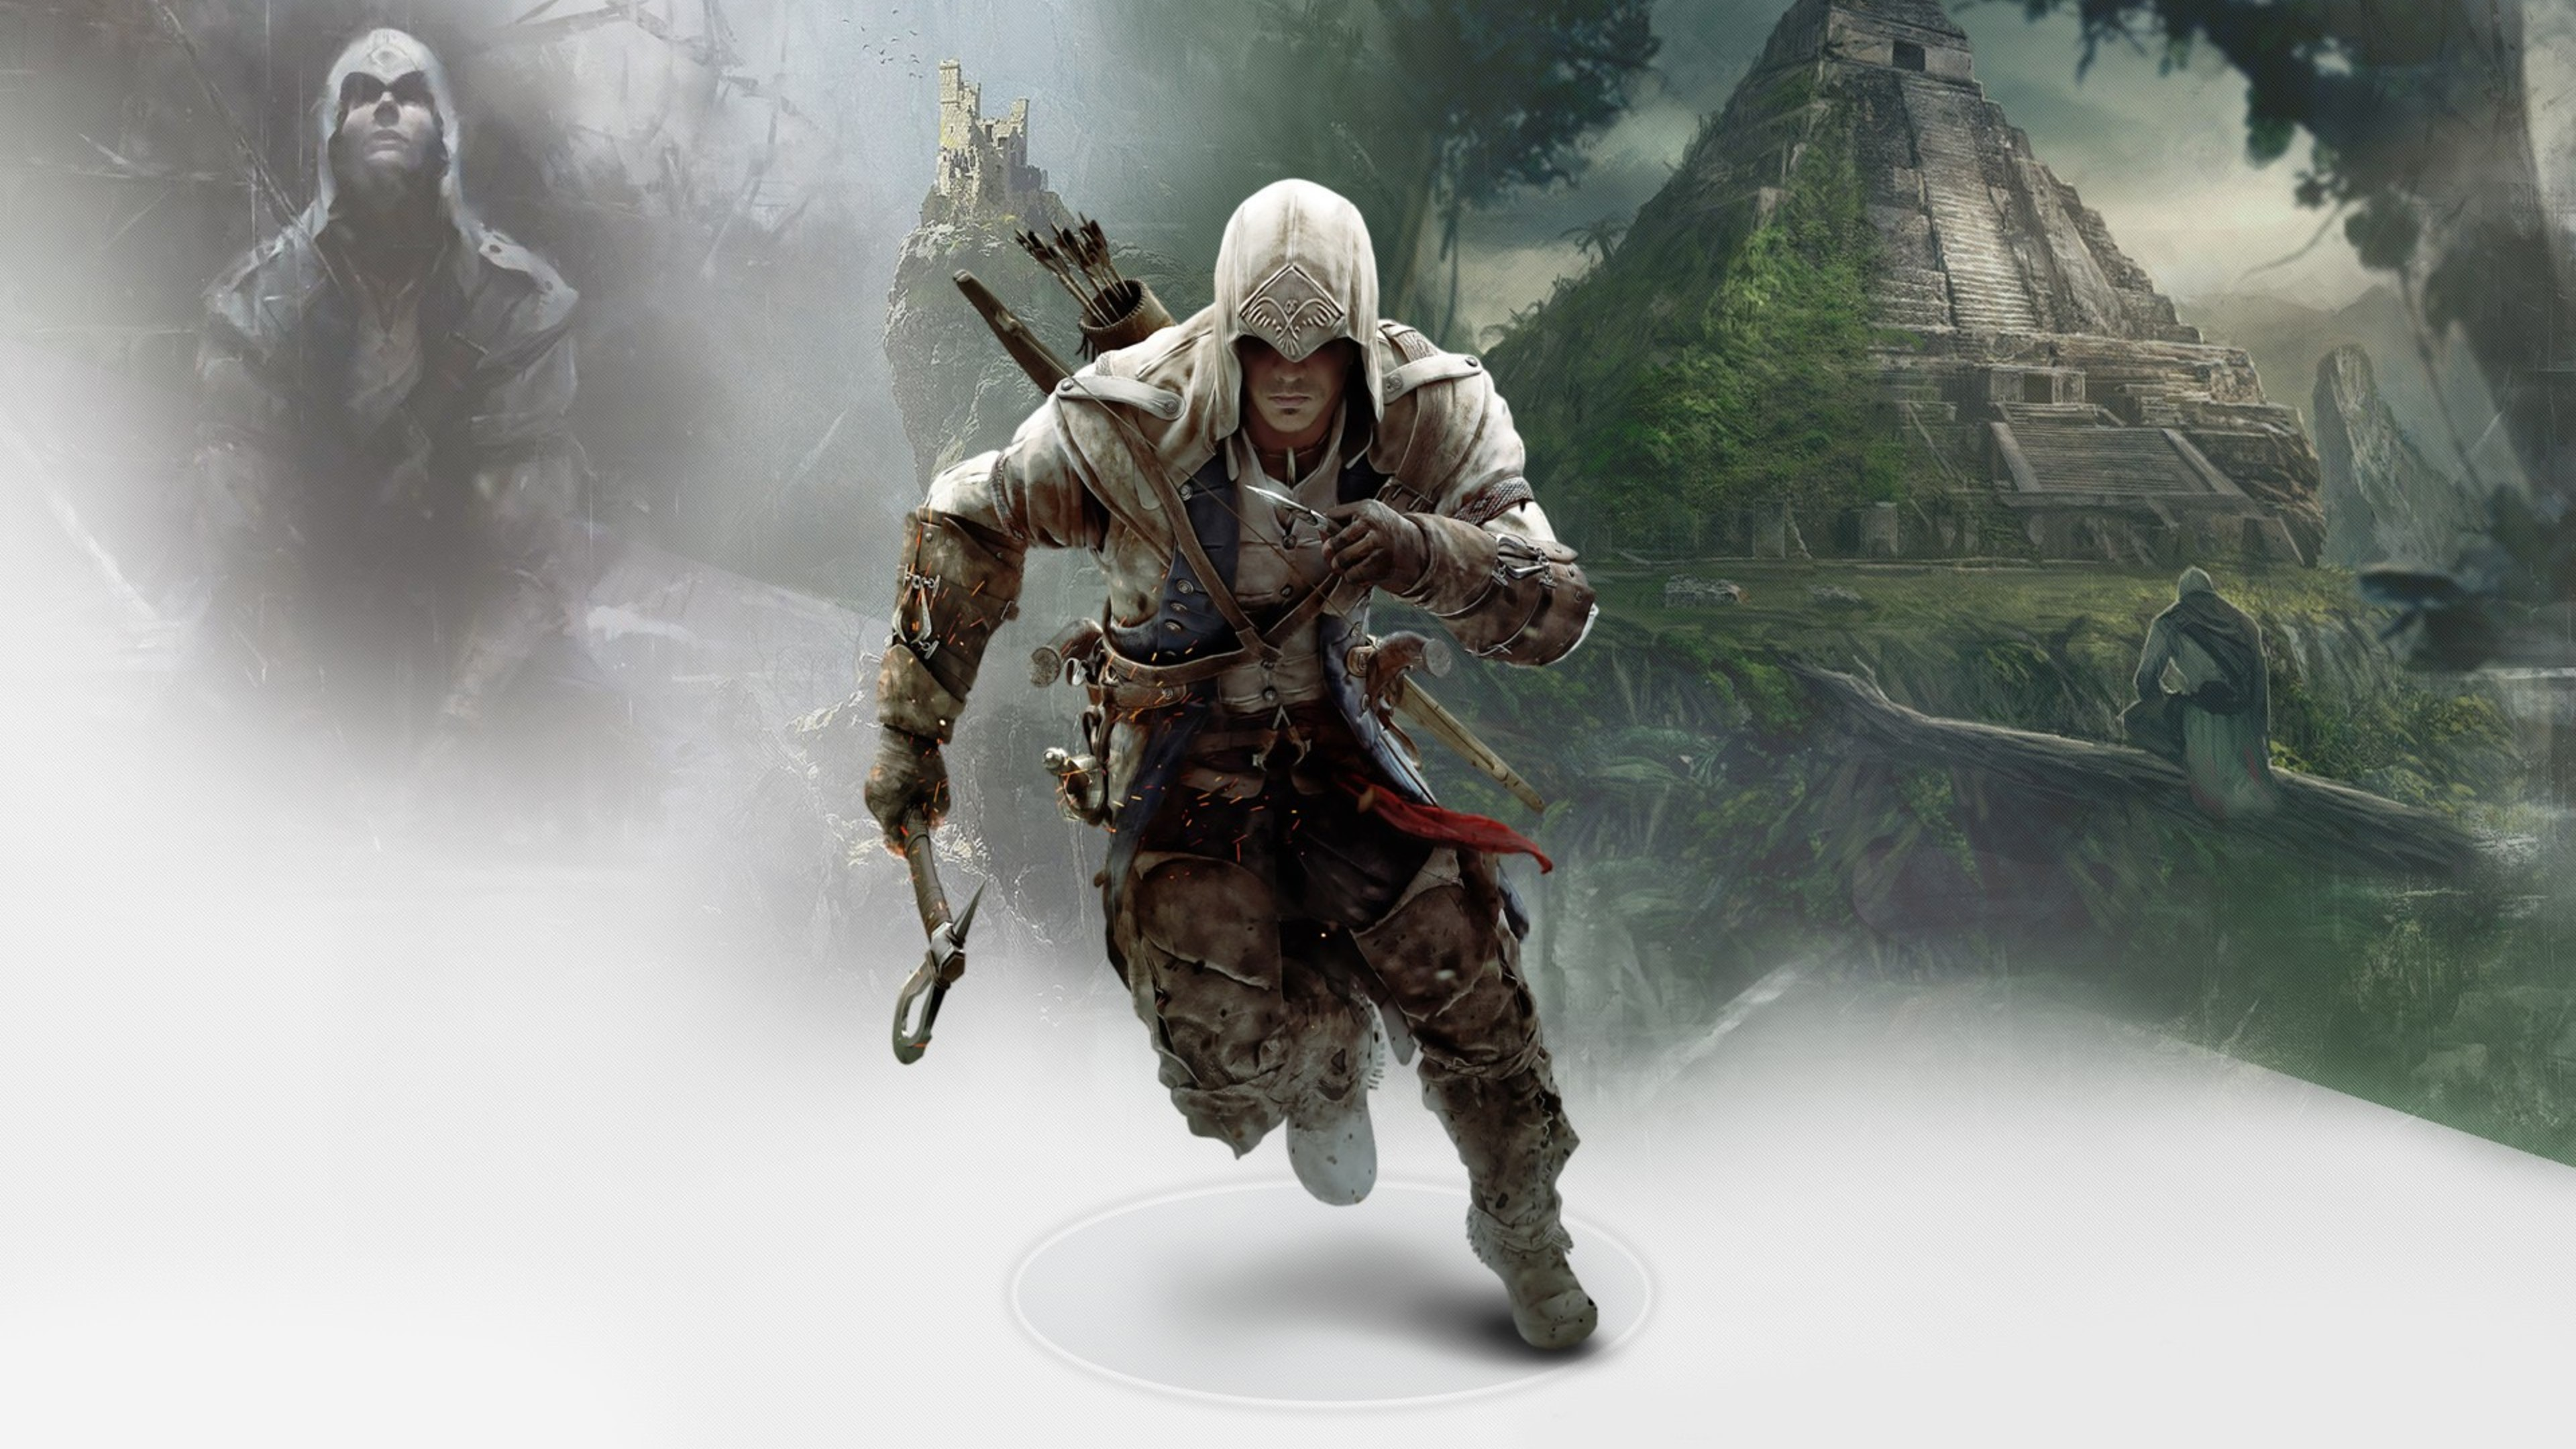 540x960 Connor In Assassins Creed 3 540x960 Resolution Hd 4k